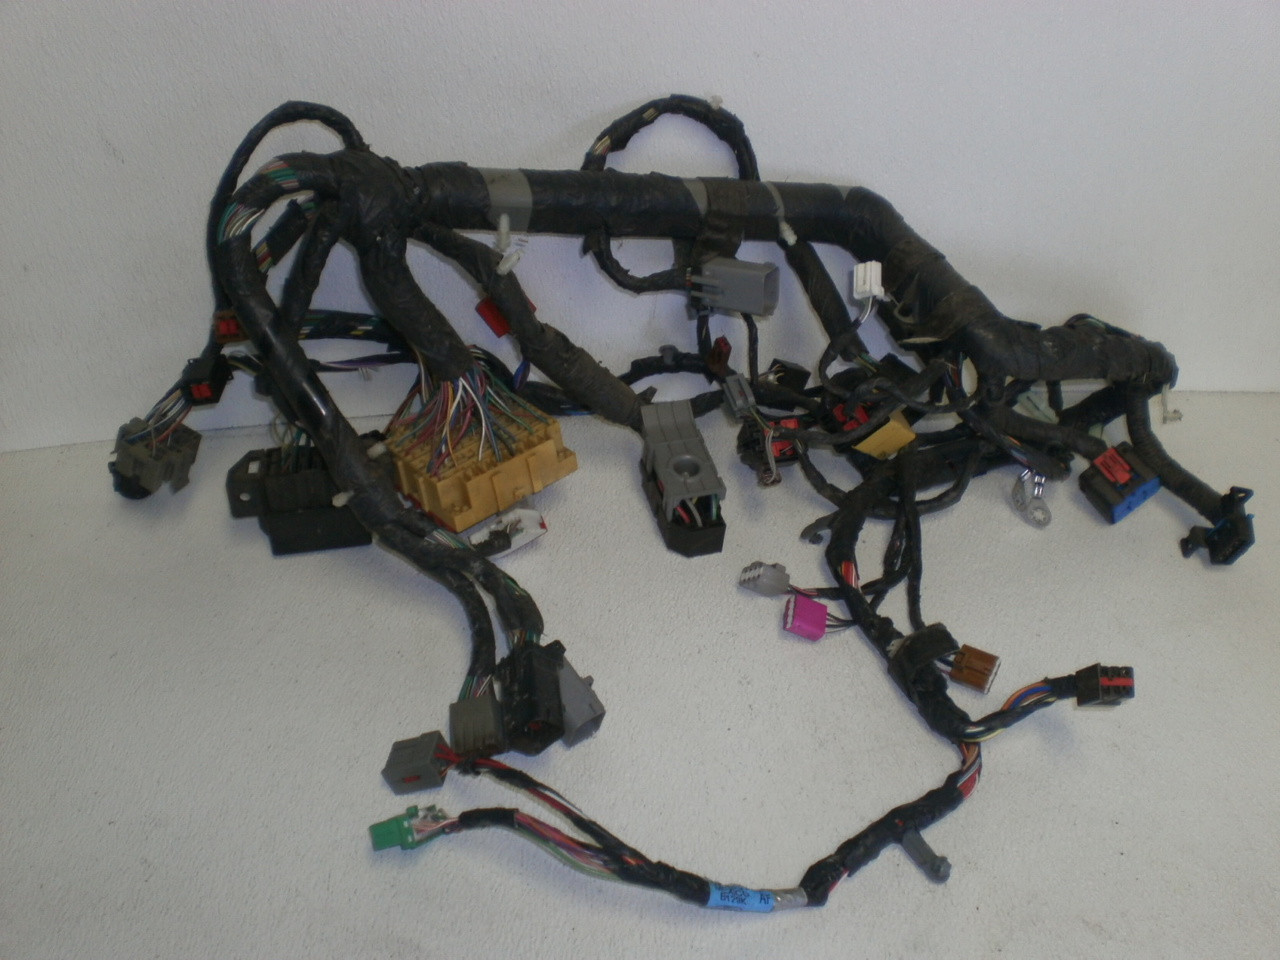 2003 2004 ford mustang interior dash wire harness 3r33 14401 bb rh fordonlyparts com